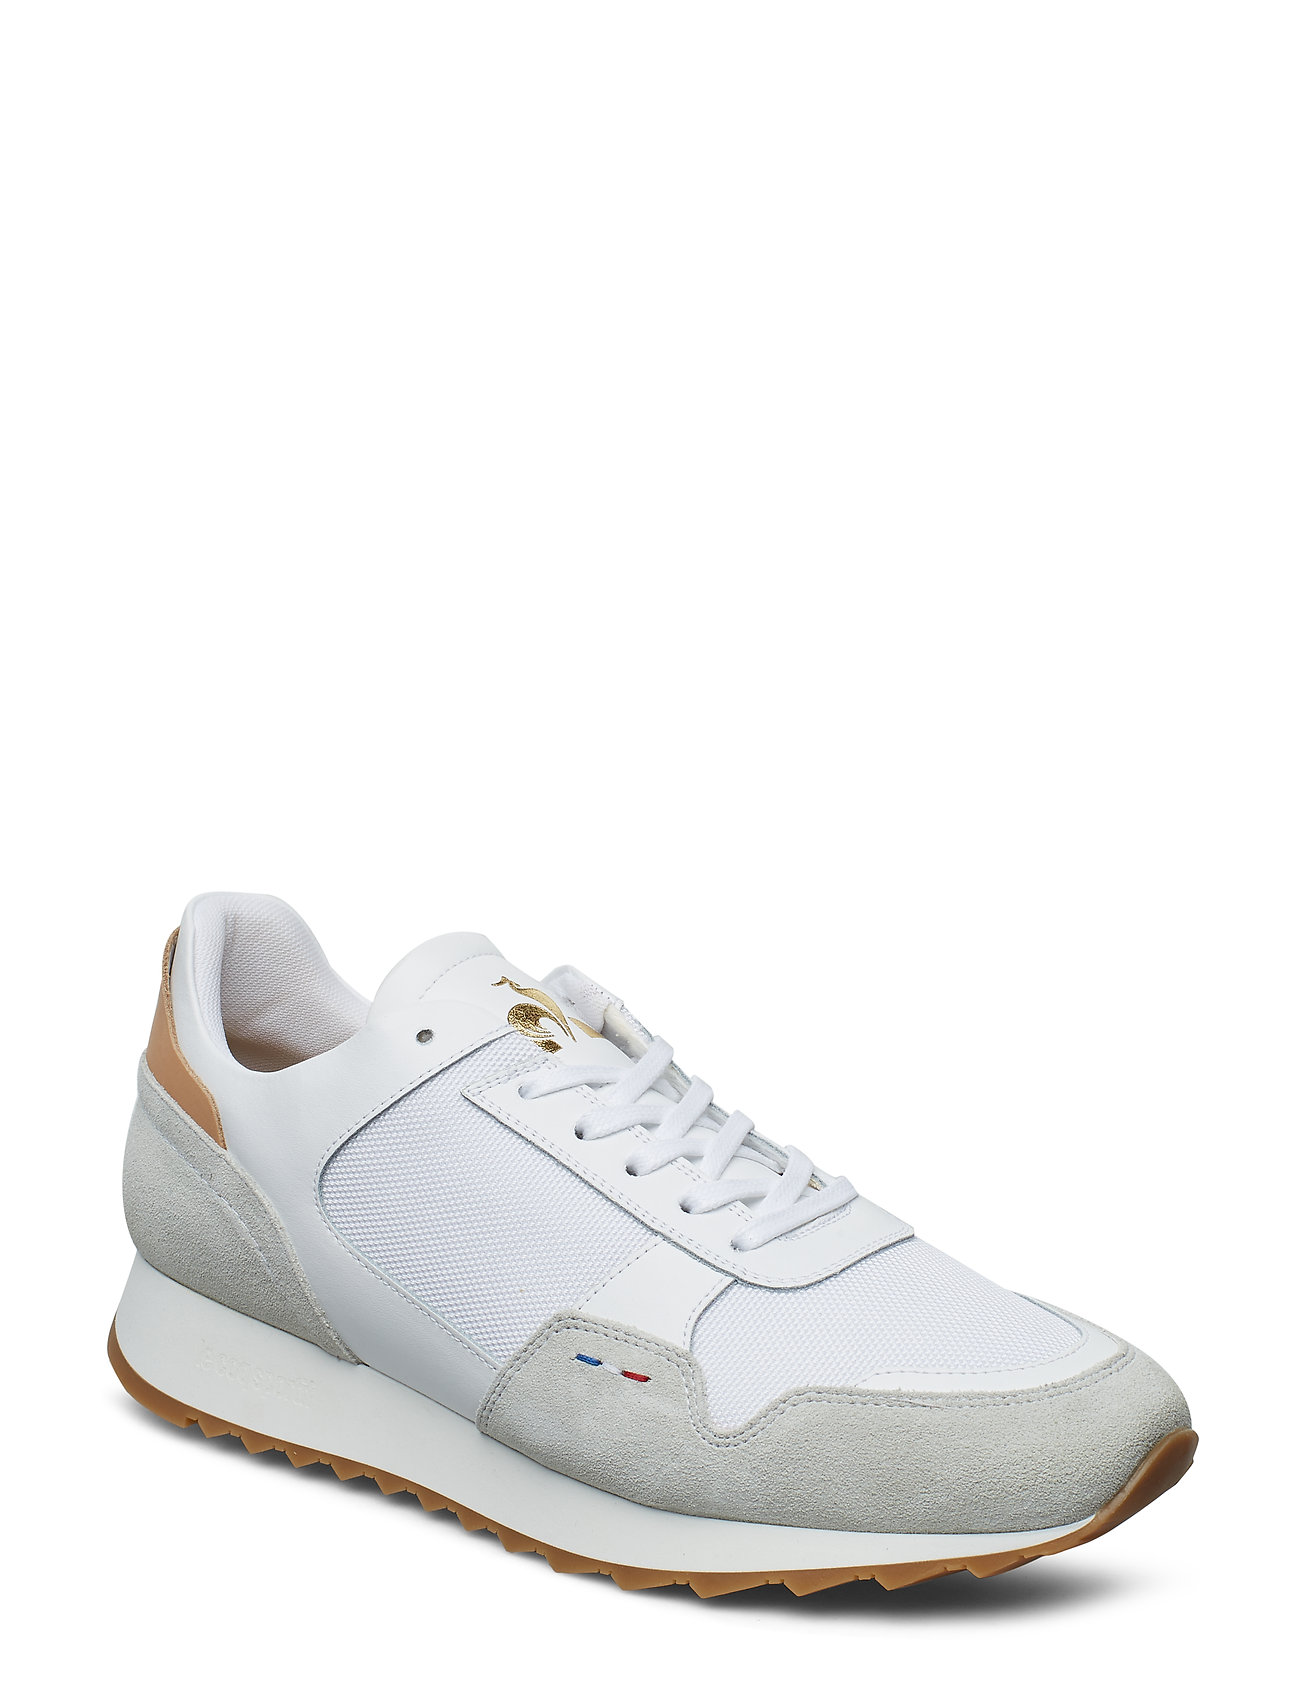 Image of Challenger Low-top Sneakers Hvid LE COQ SPORTIF (3198434833)